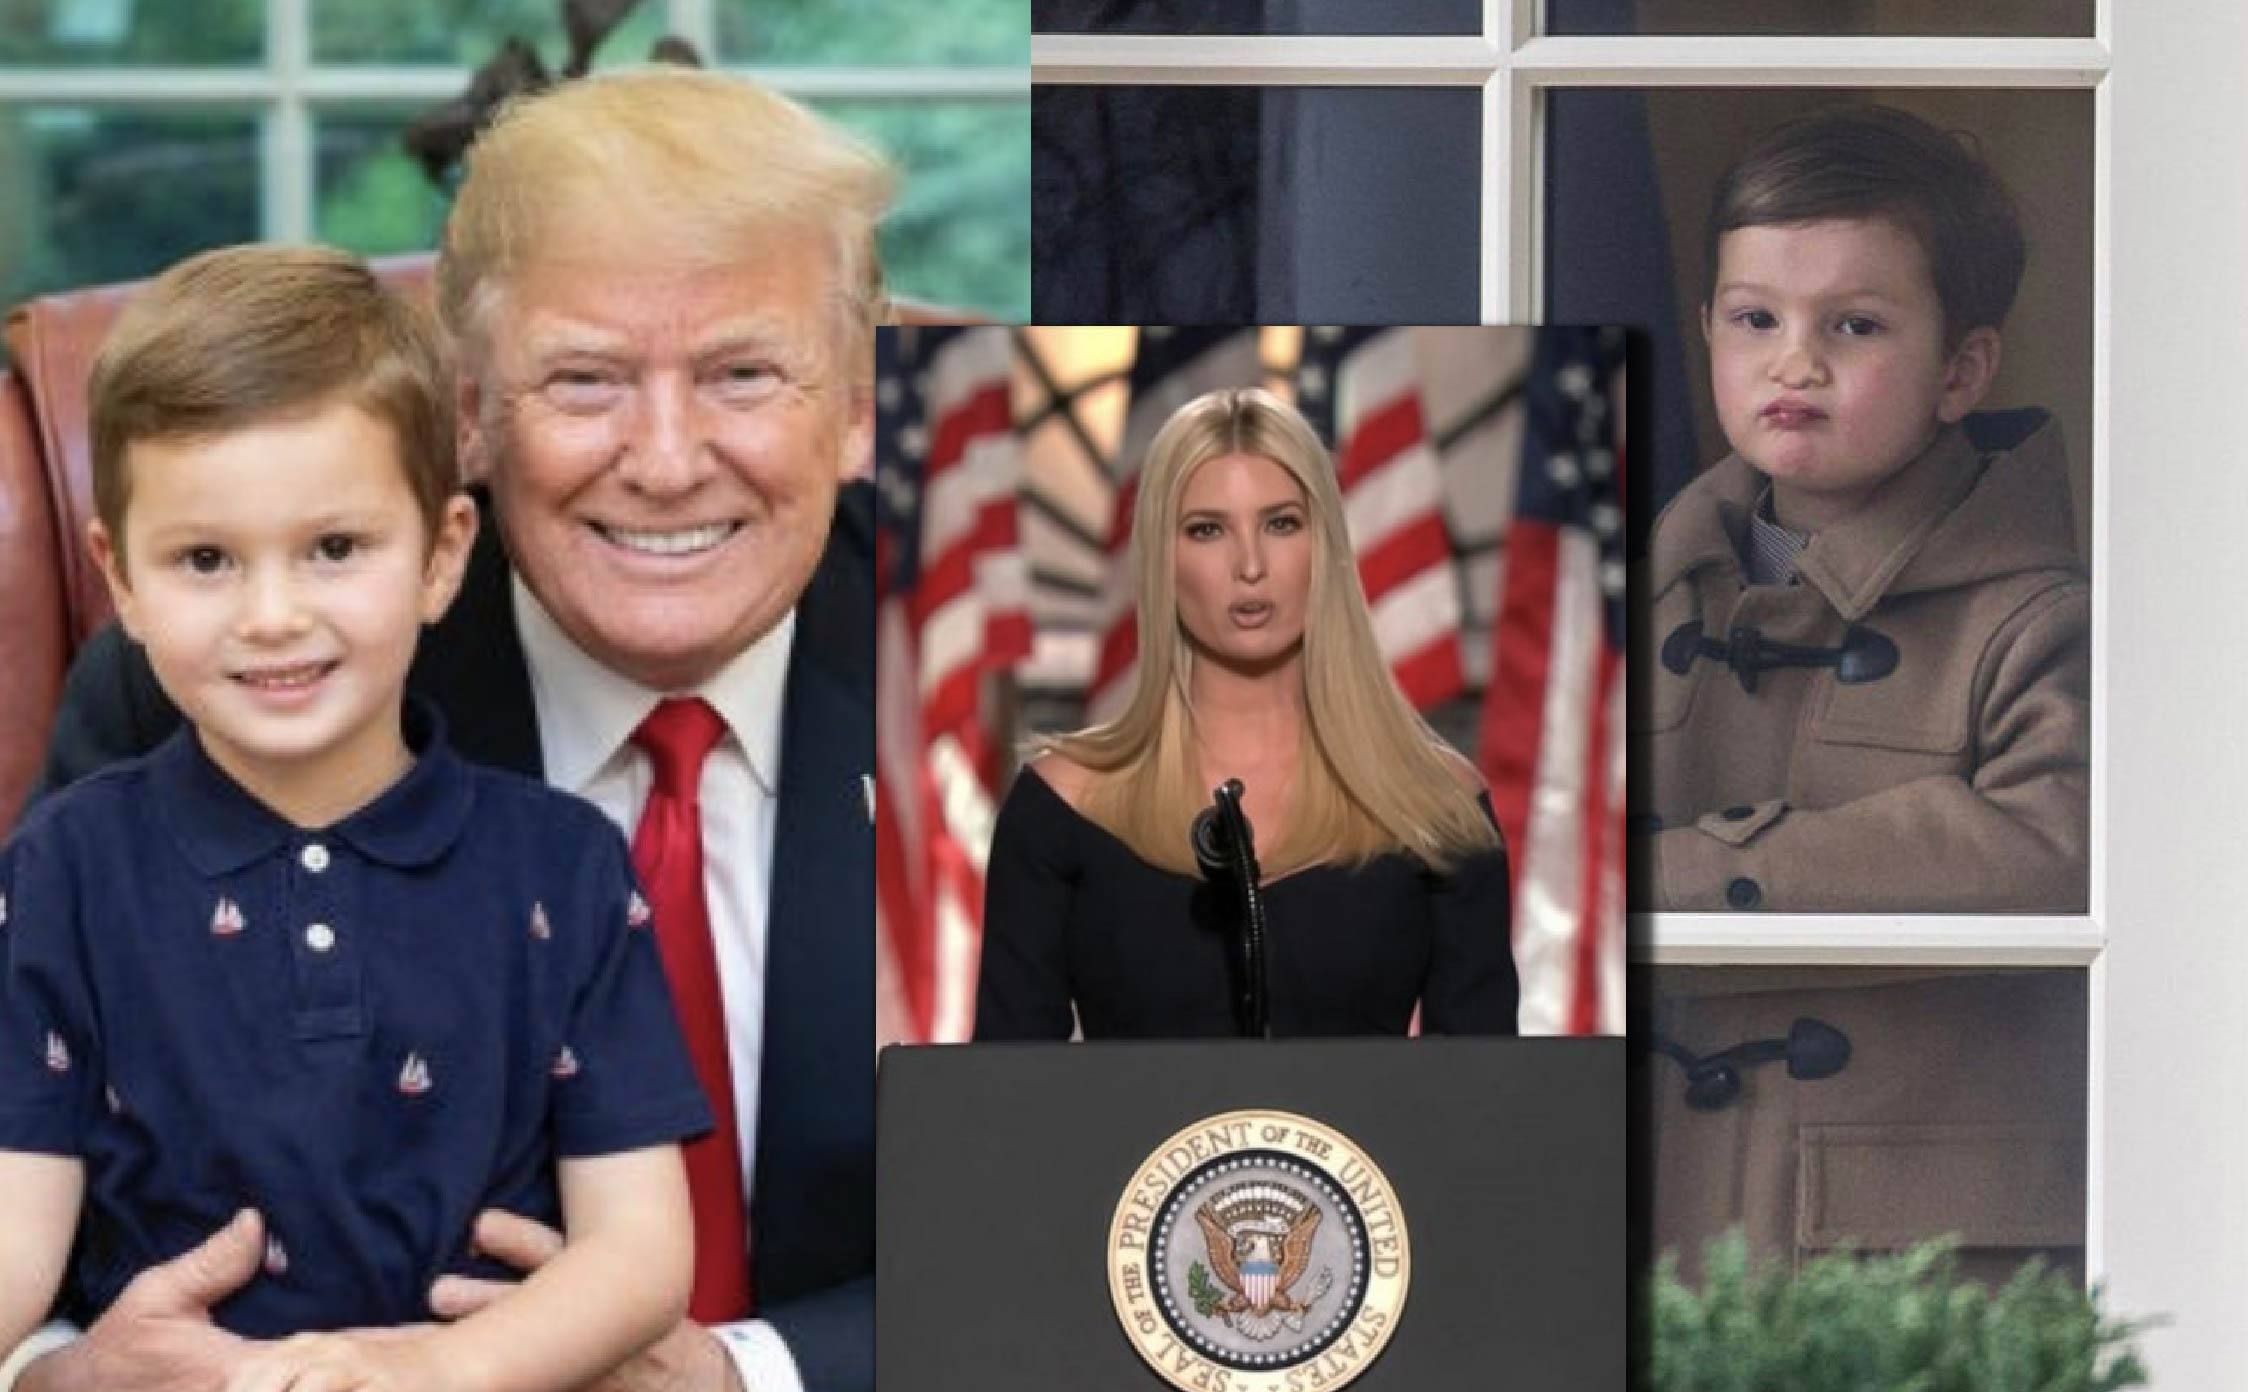 Full-Blown Media Assault Unleashed on Trump's Three-Year-Old Grandson